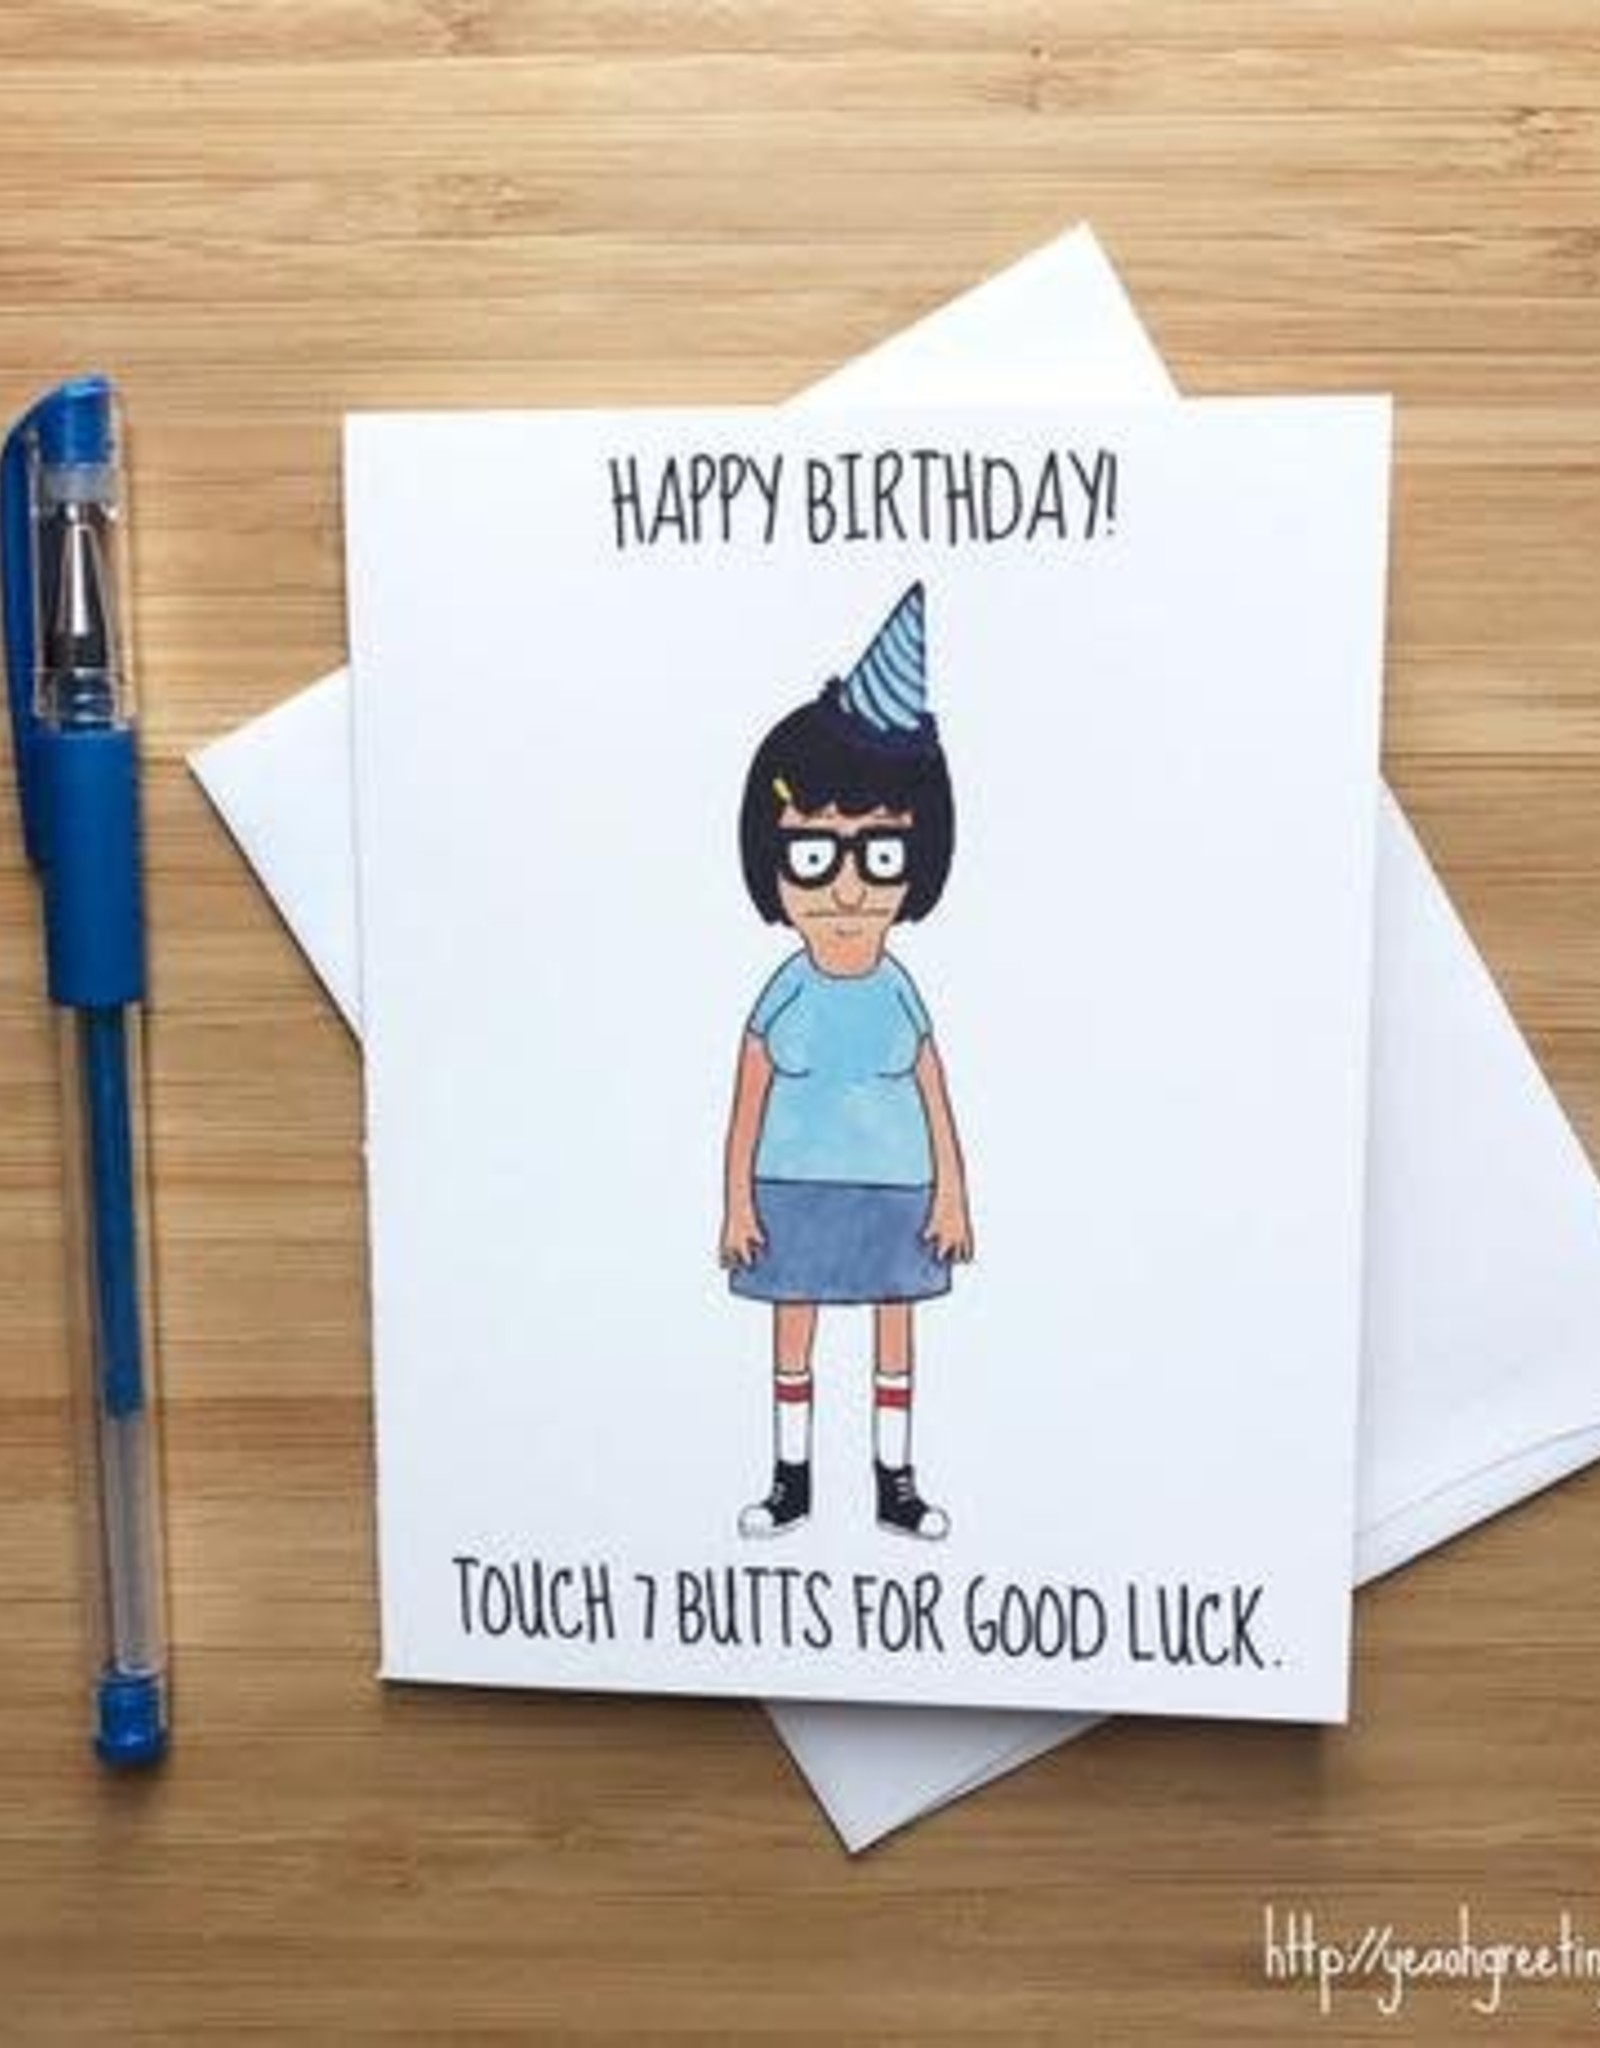 YeaOh Greetings Touch 7 Butts Birthday (Bob's Burgers) Greeting Card